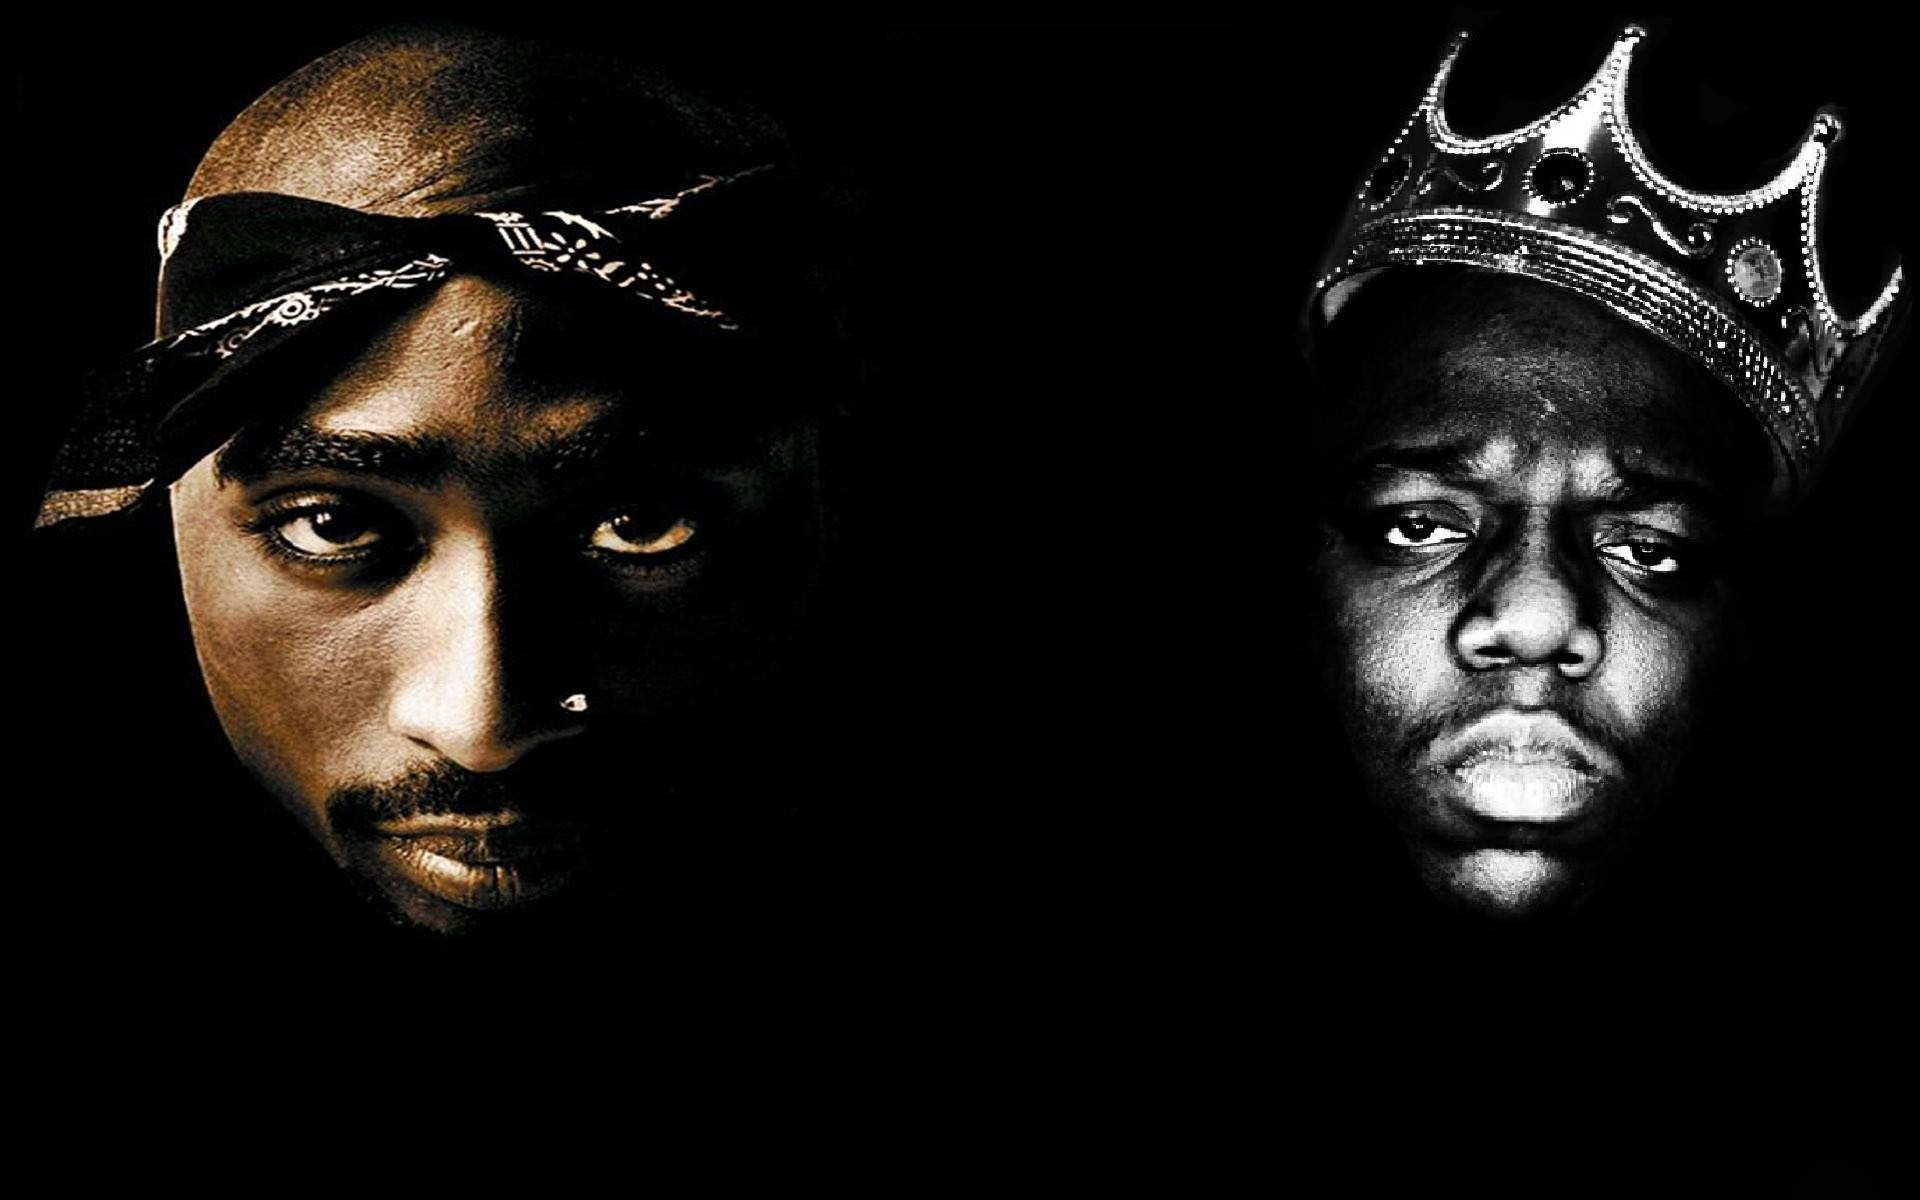 tupac and biggie wallpaper ·①